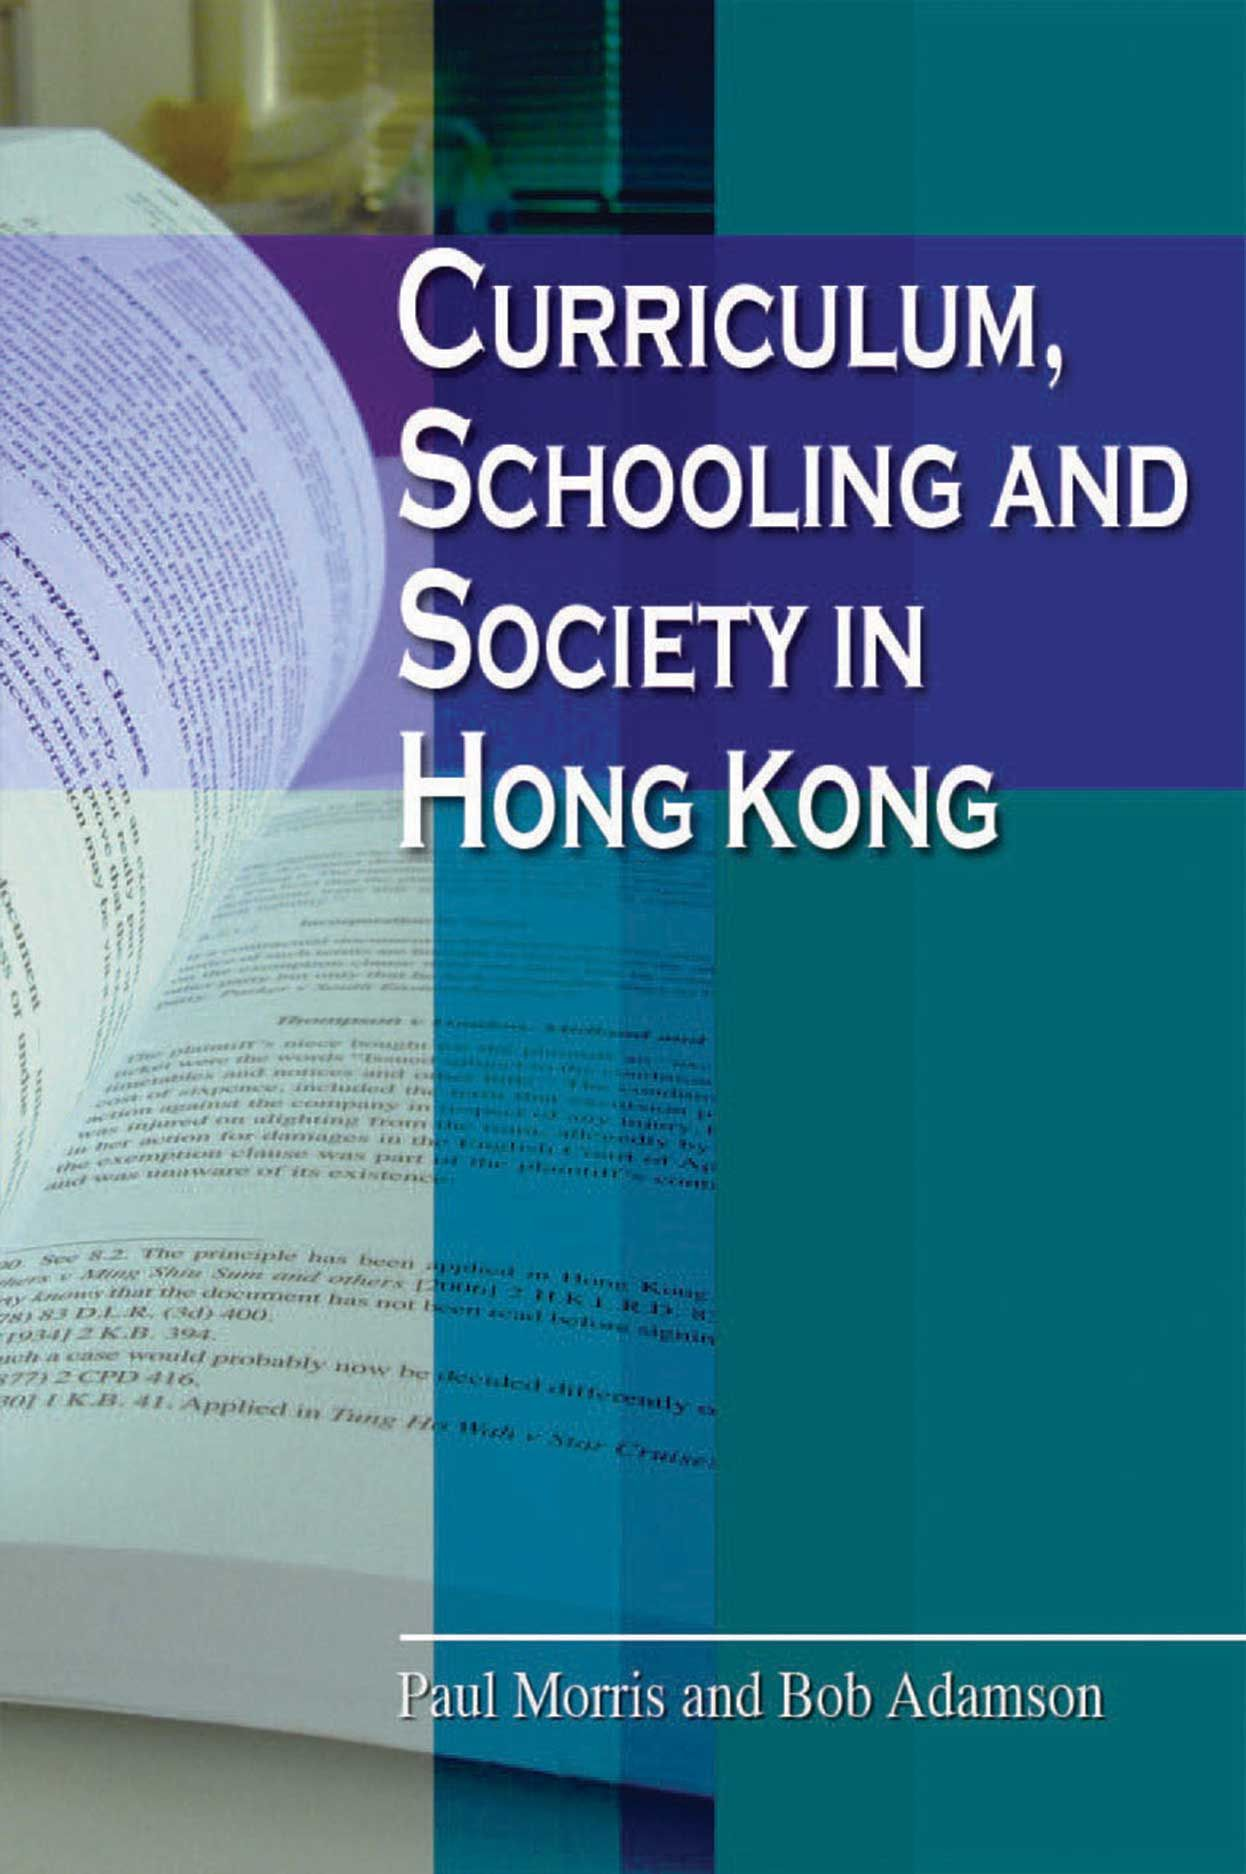 Curriculum, Schooling and Society in Hong Kong